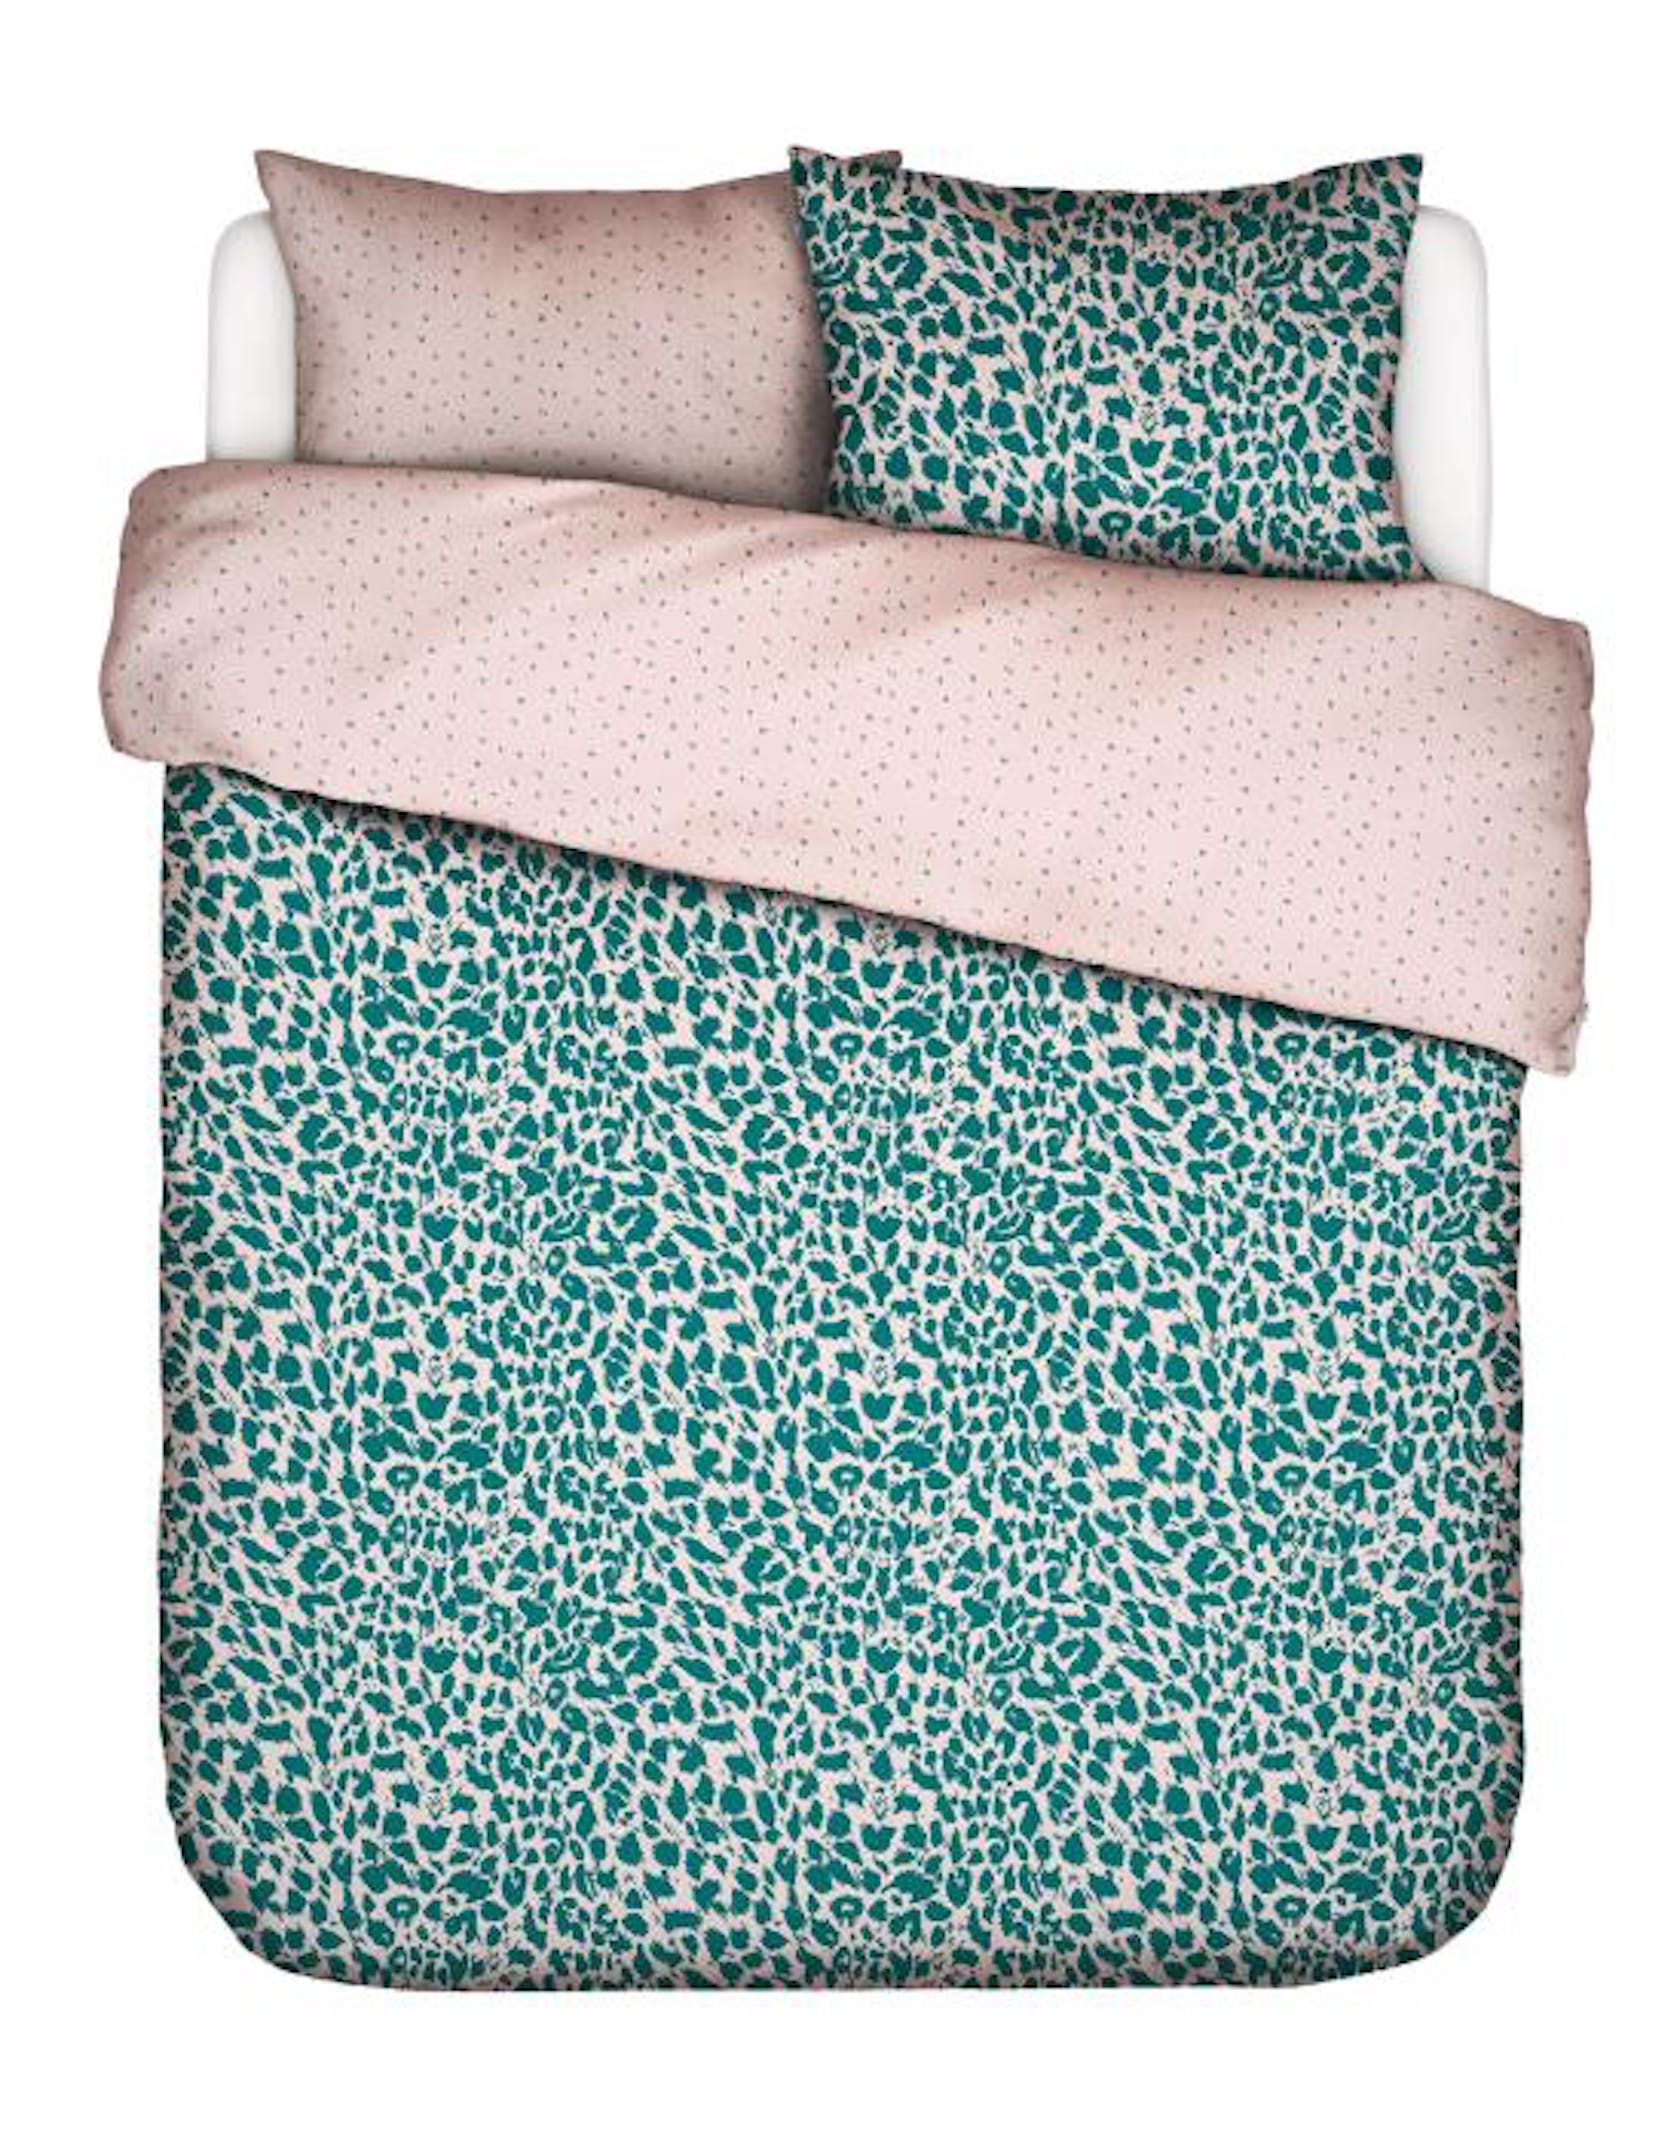 Covers & Co Wild Thing Petrol Duvet cover 240 x 220